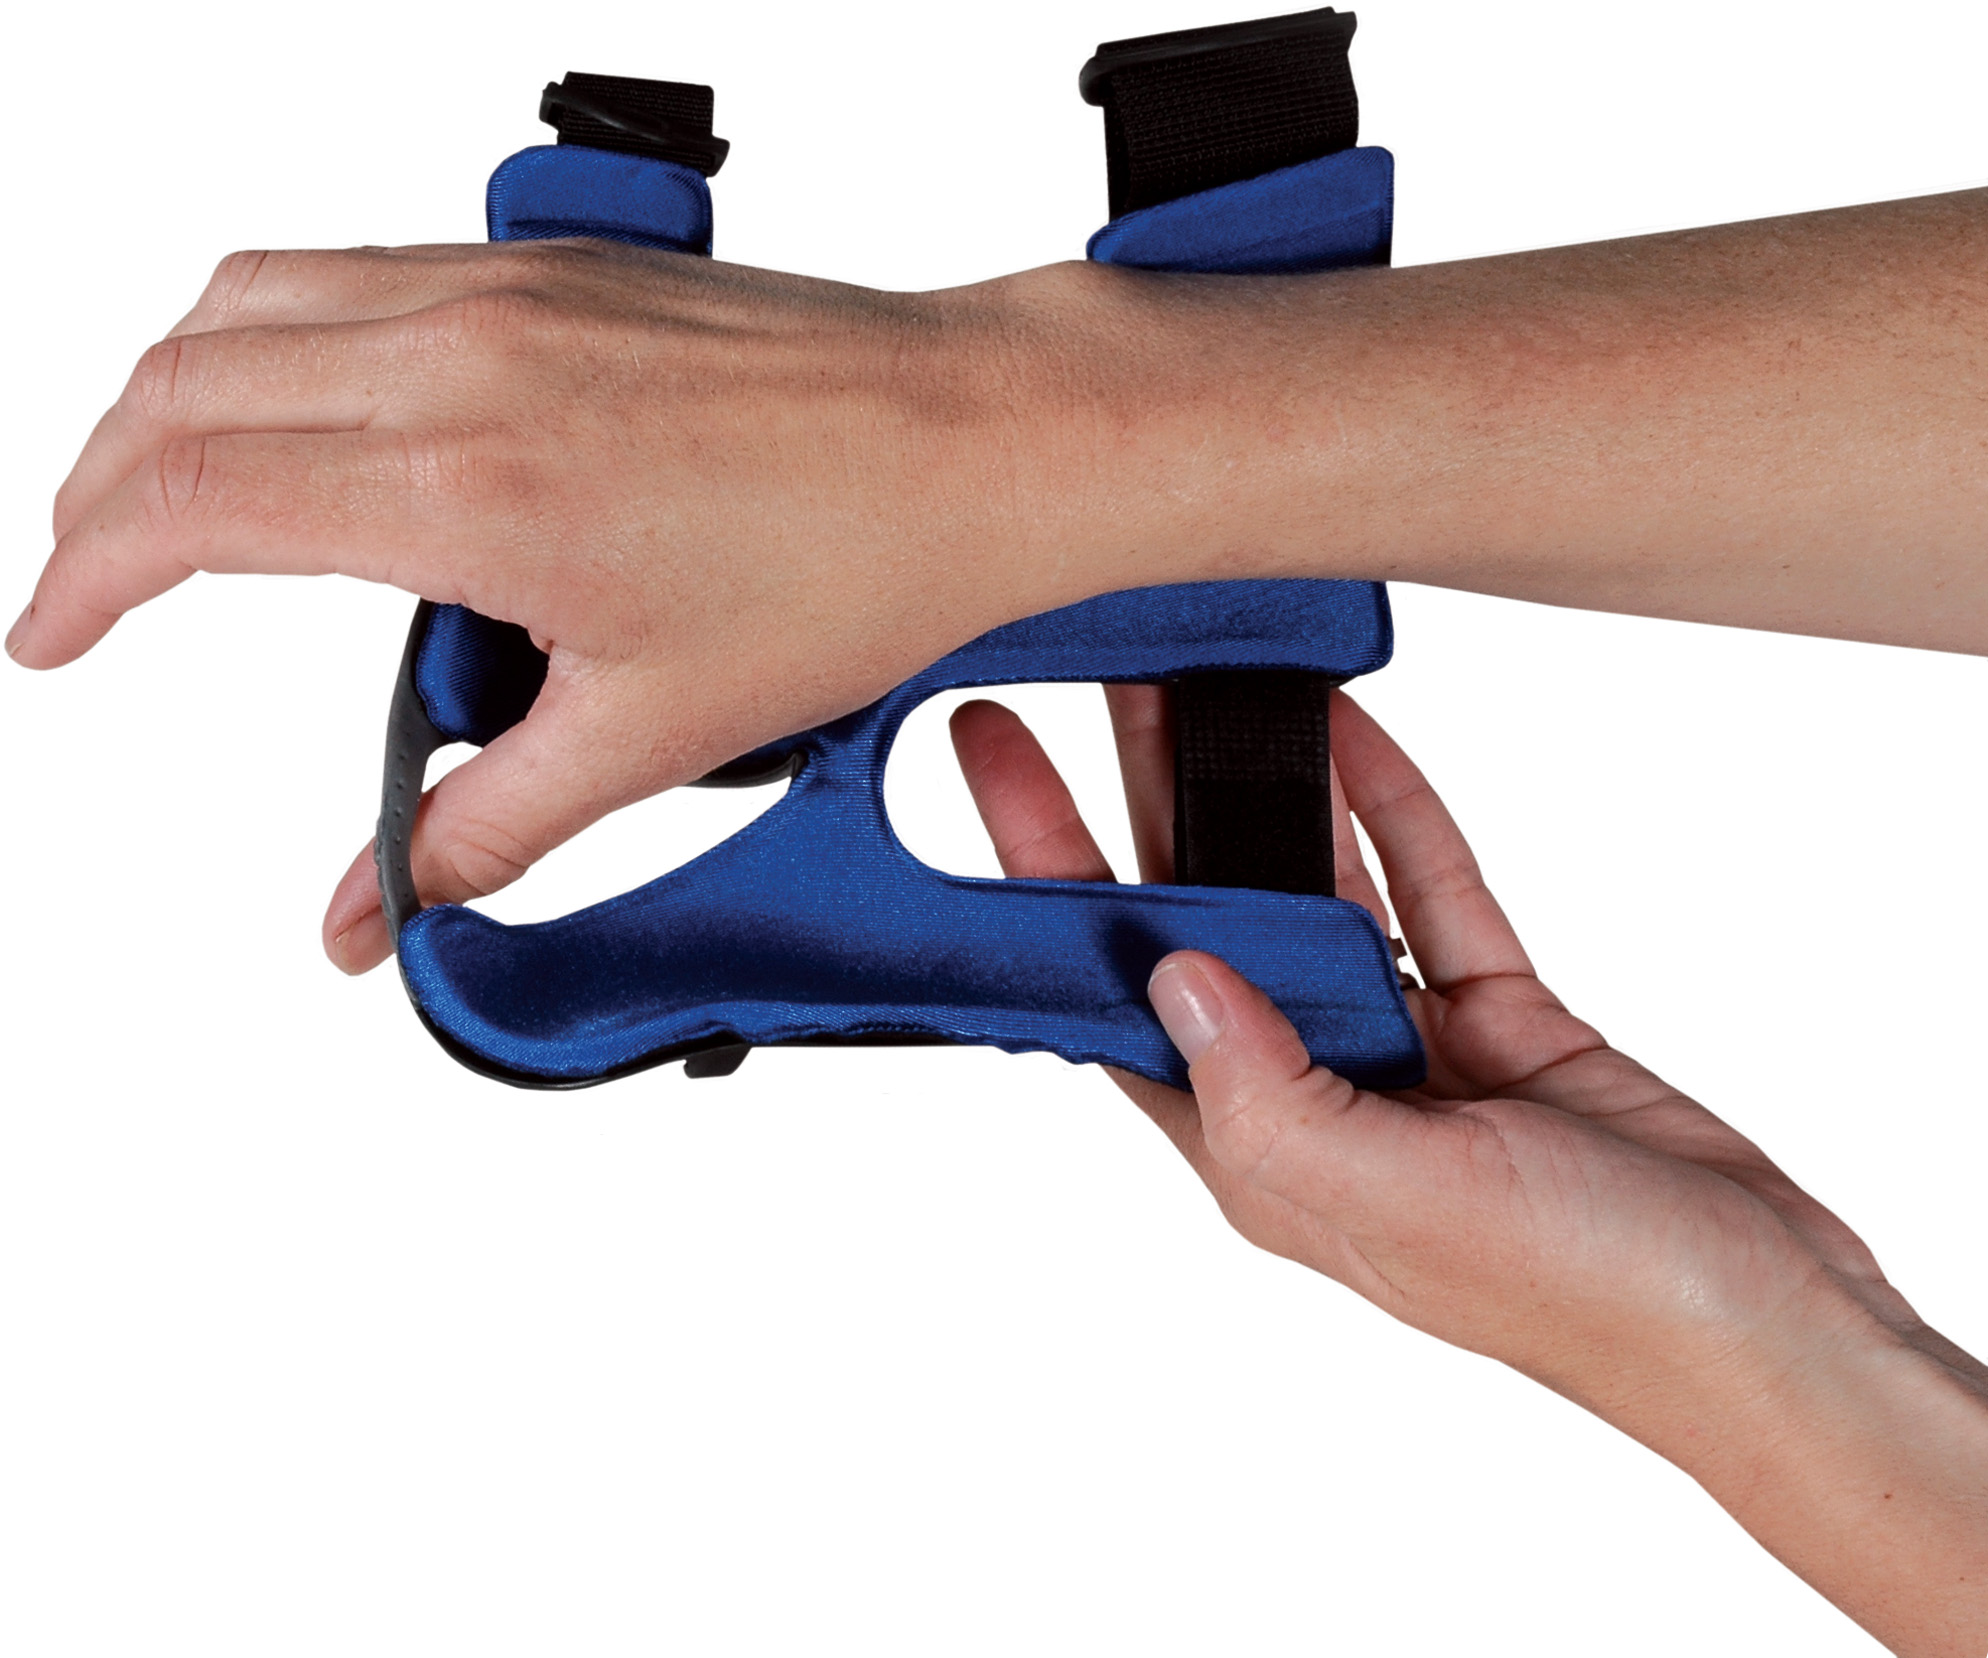 exoform-carpal-tunnel-wrist-brace-left-sm-517083-ossur-os378532-2.jpg